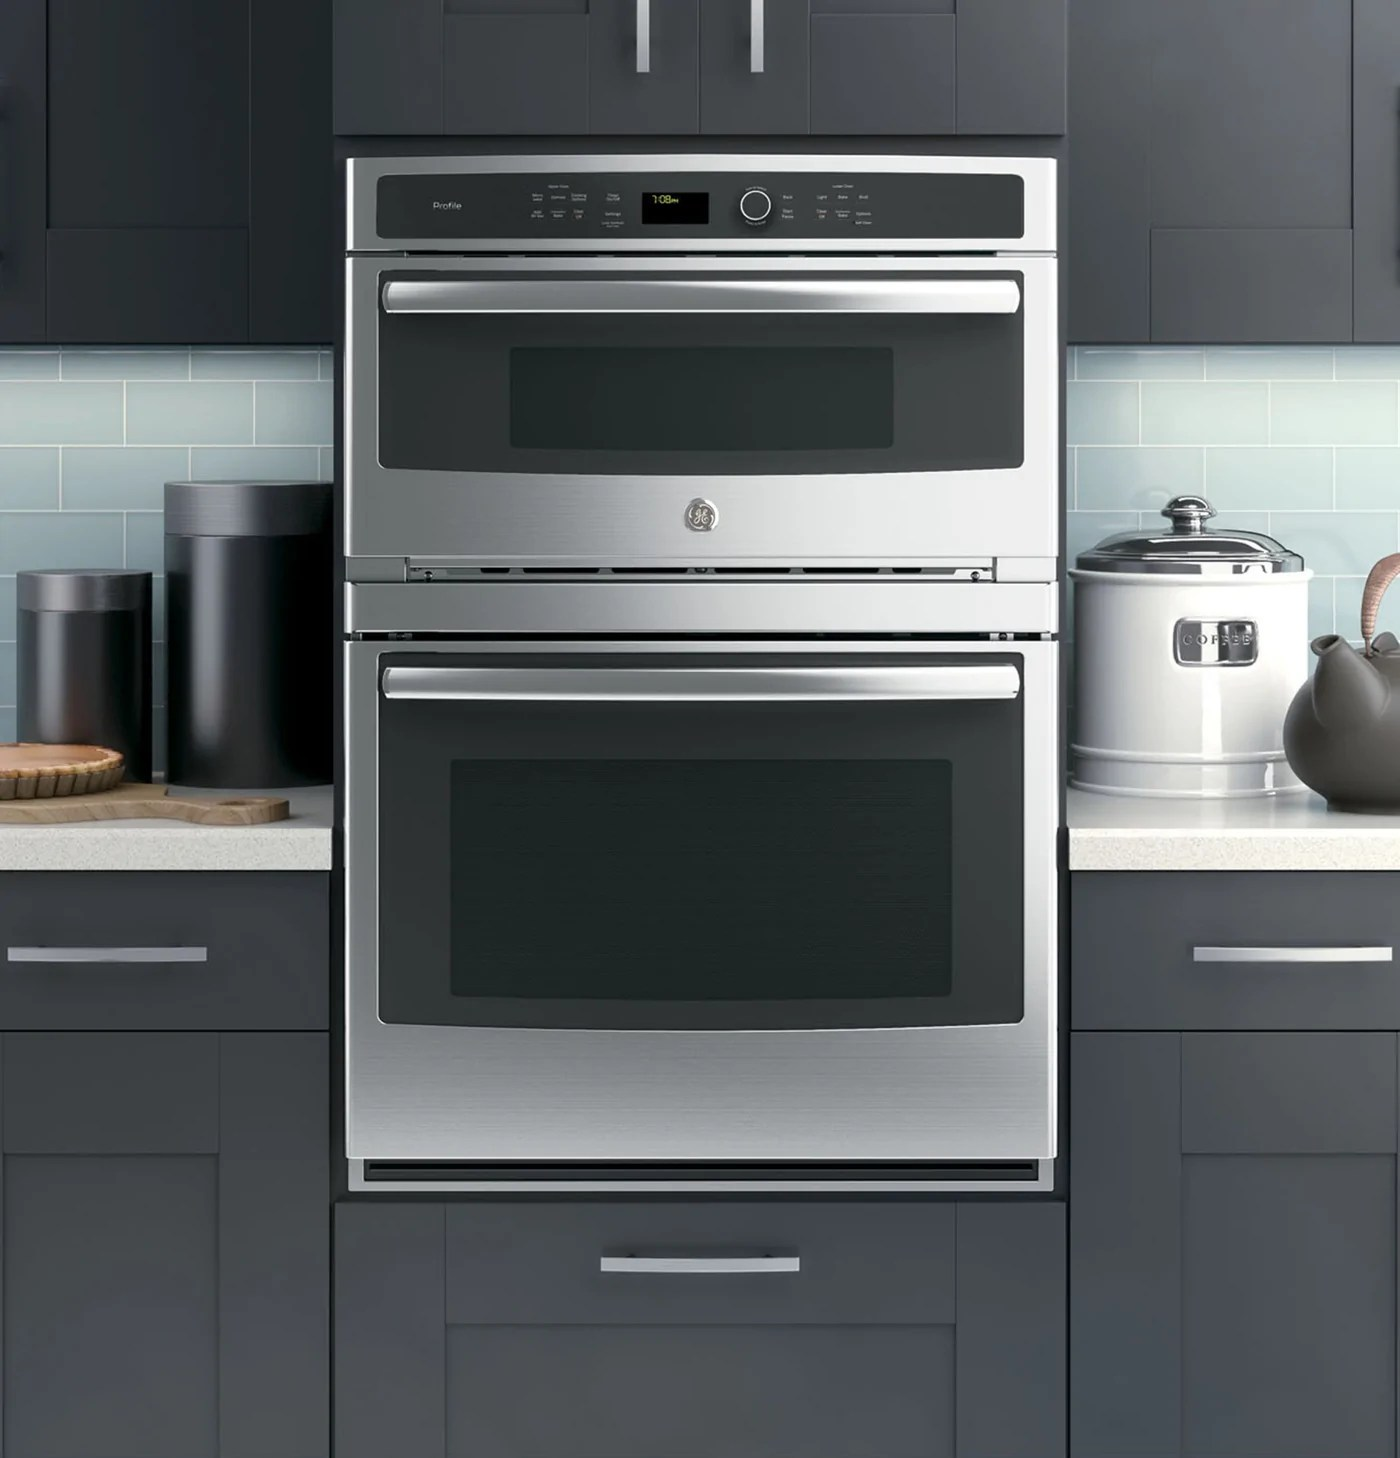 ge profile stainless steel 30 inch built in combination convection microwave true european convection oven pt7800shss